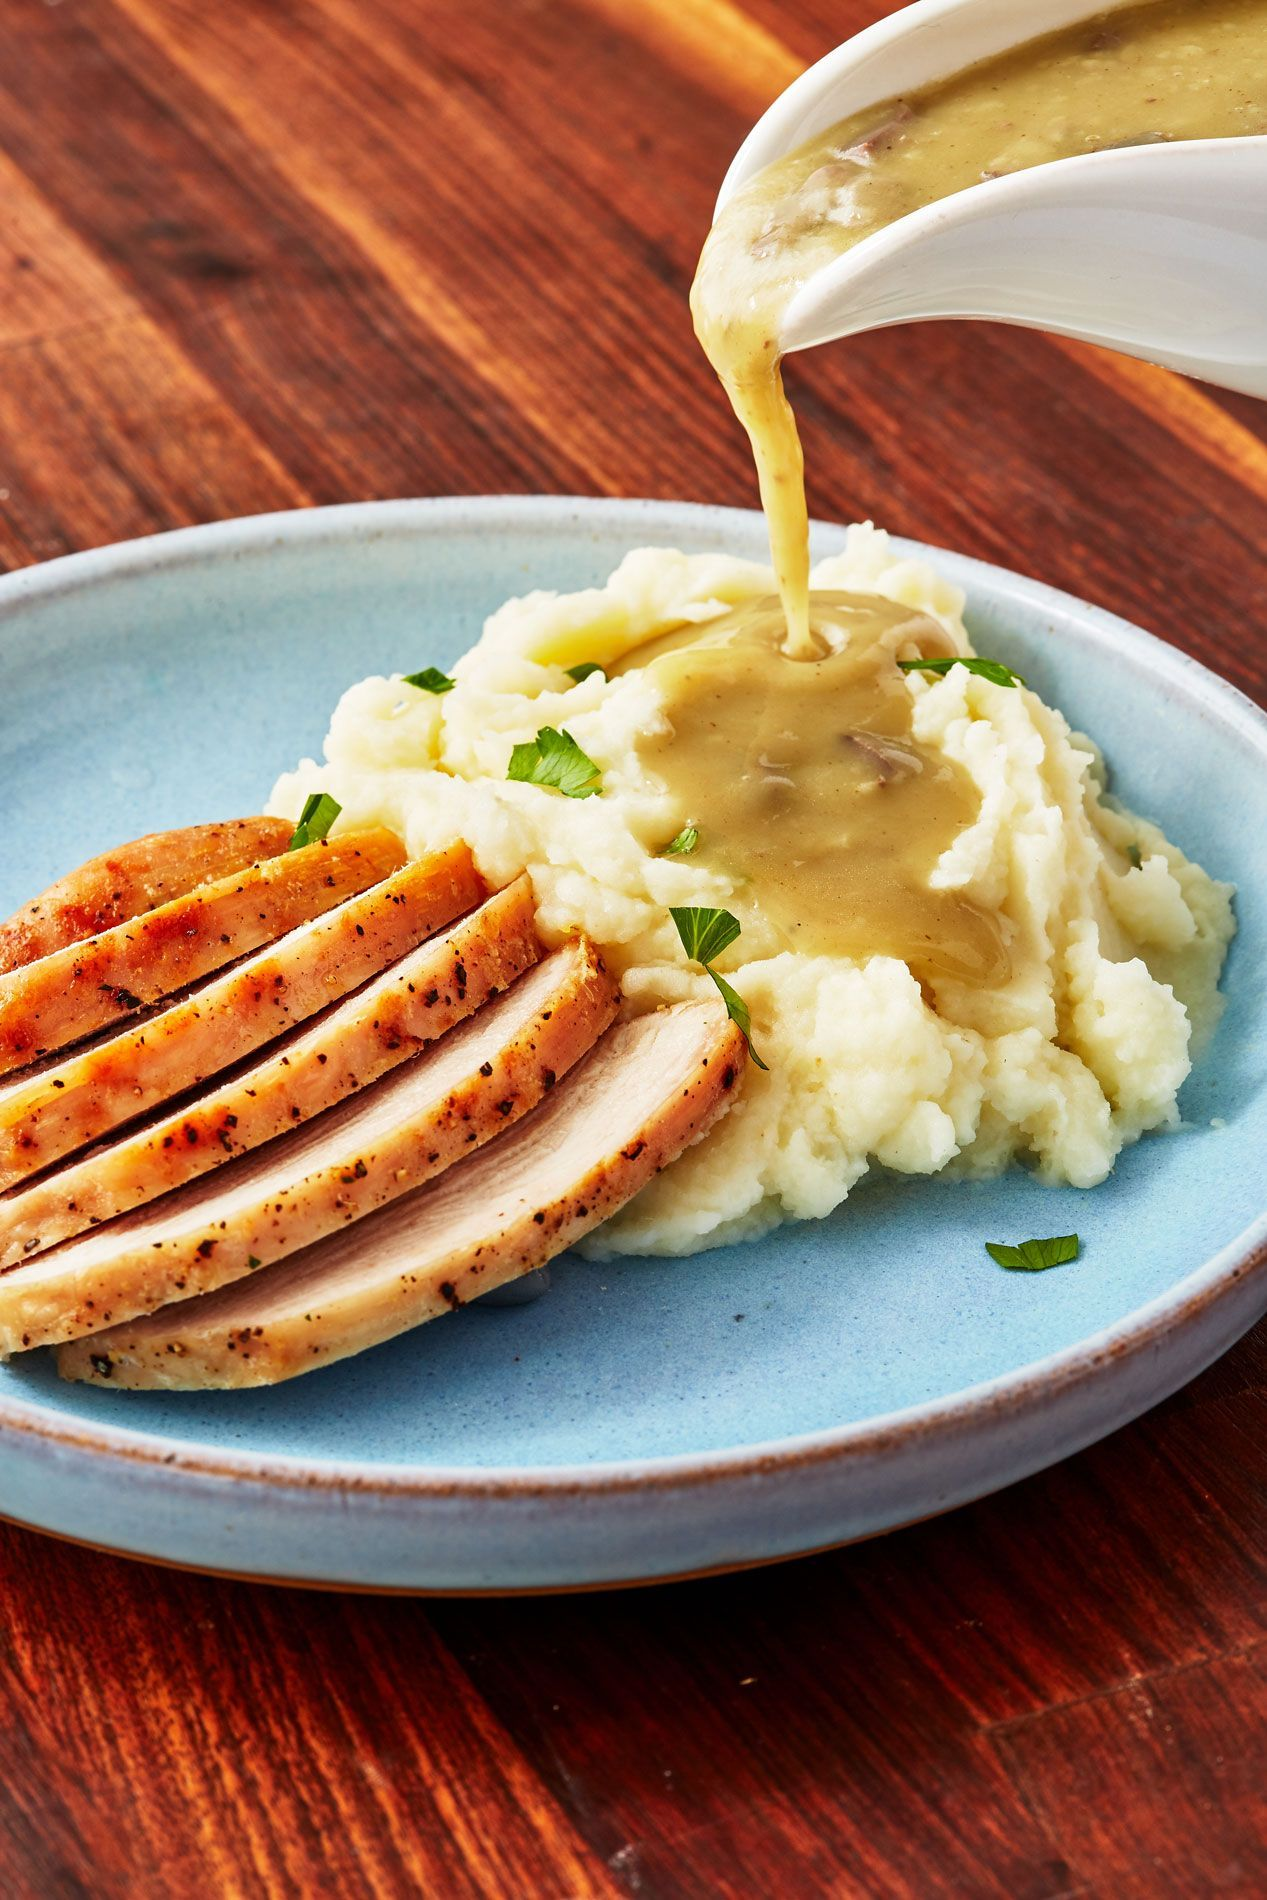 98172749ed7d3ee0e0ad314661b3fdc6 - Better Homes And Gardens Giblet Gravy